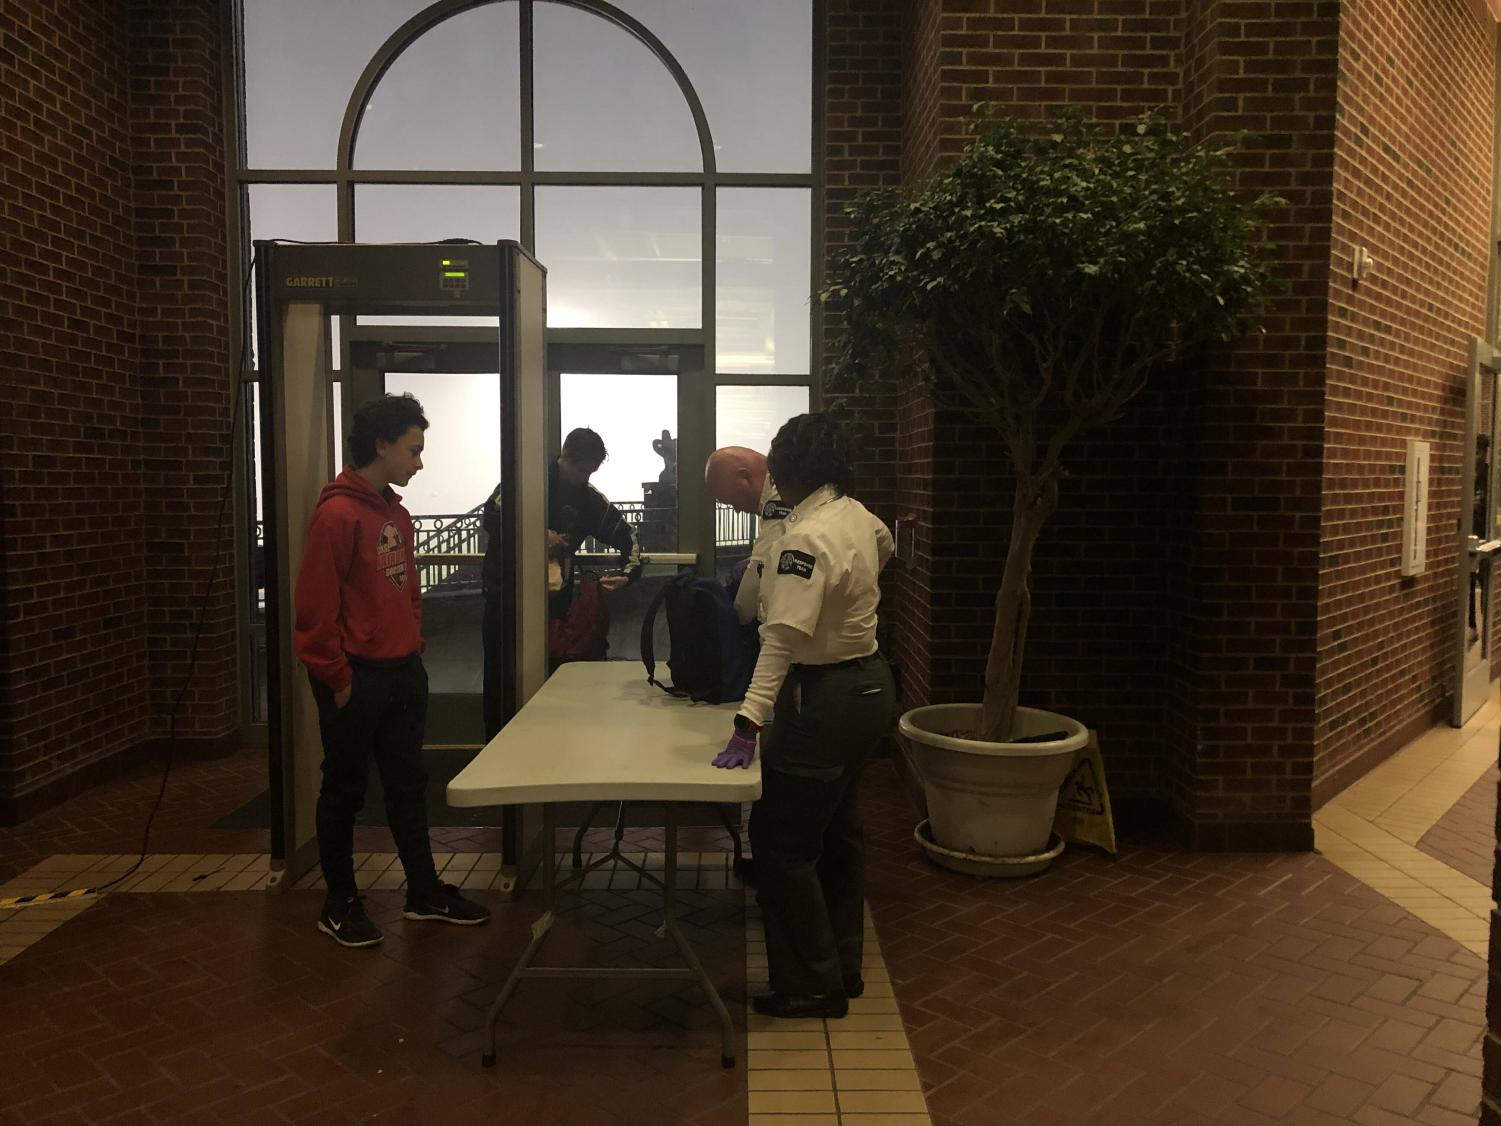 Every morning, students must clear metal detectors and have their bags searched when entering the school. Metal detectors are part of a new security protocol added this school year.